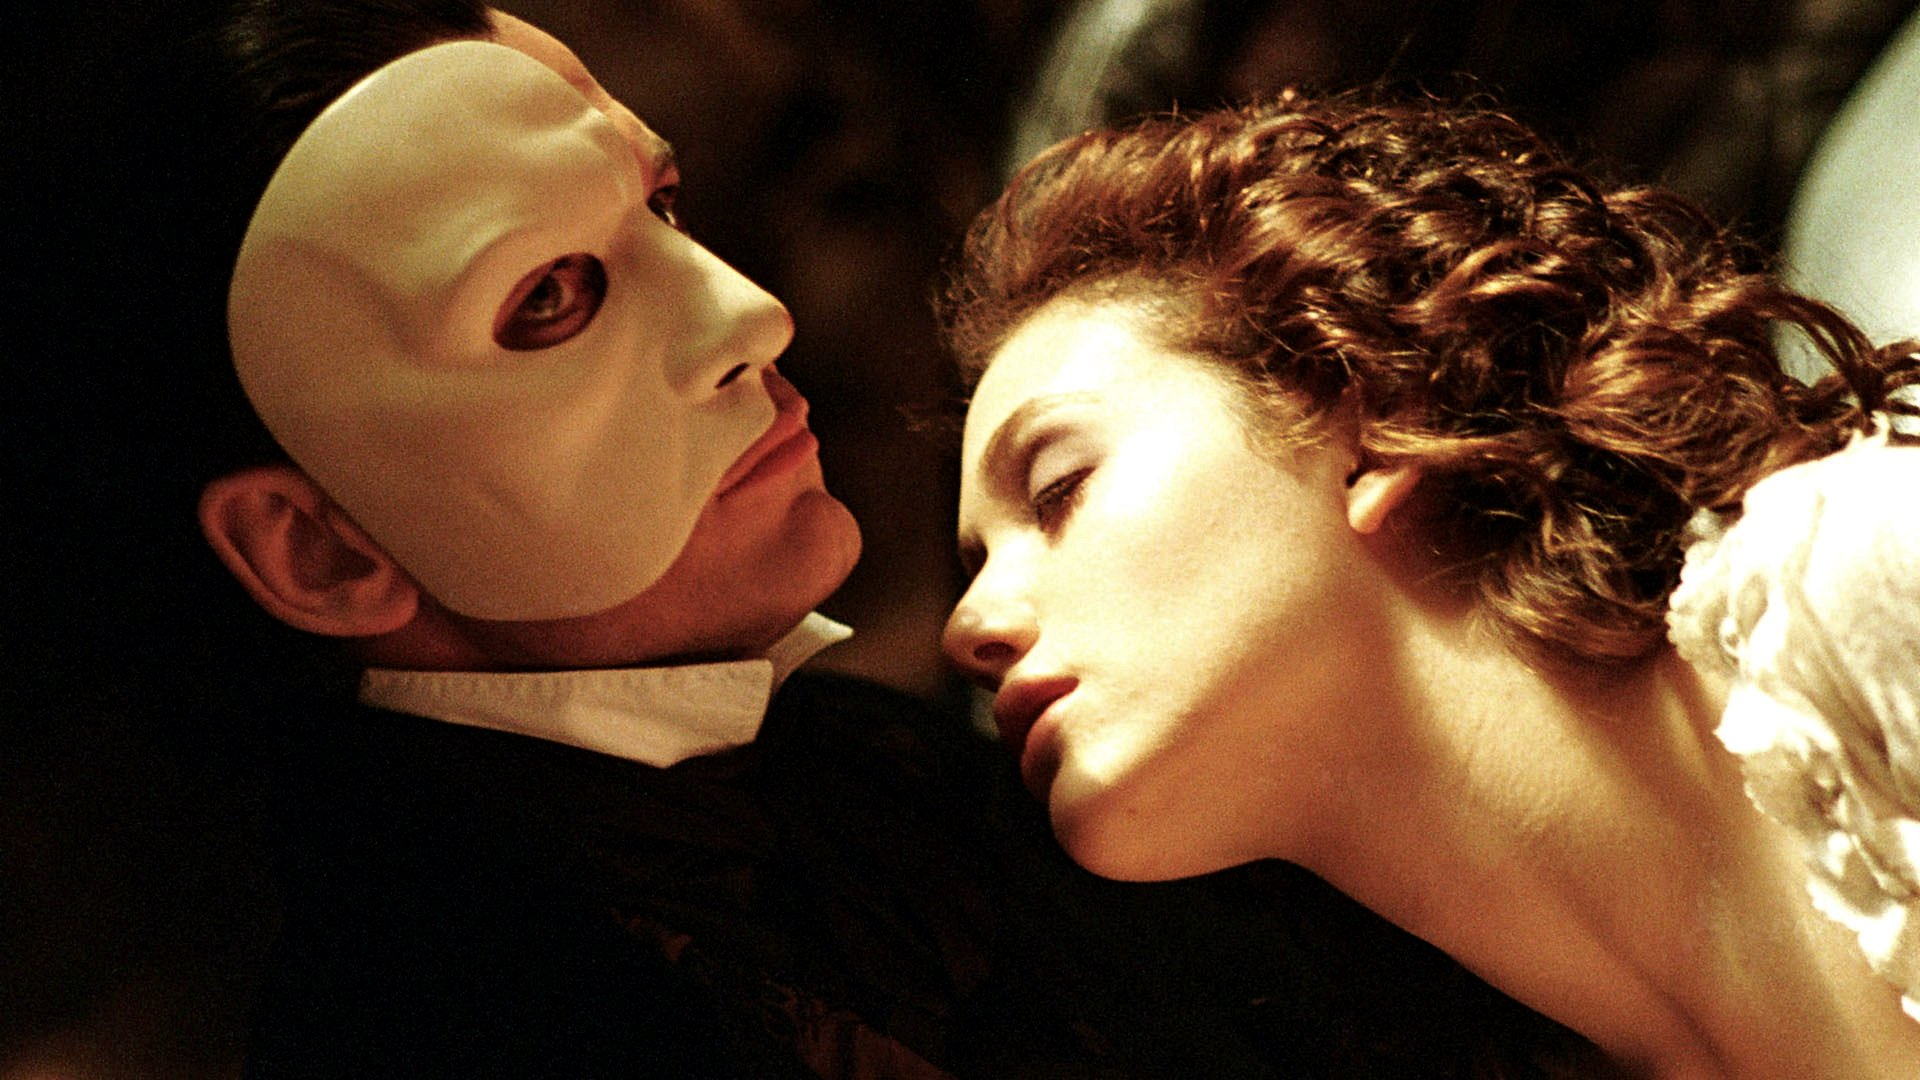 The Phantom Of The Opera Hd Wallpaper Background Image